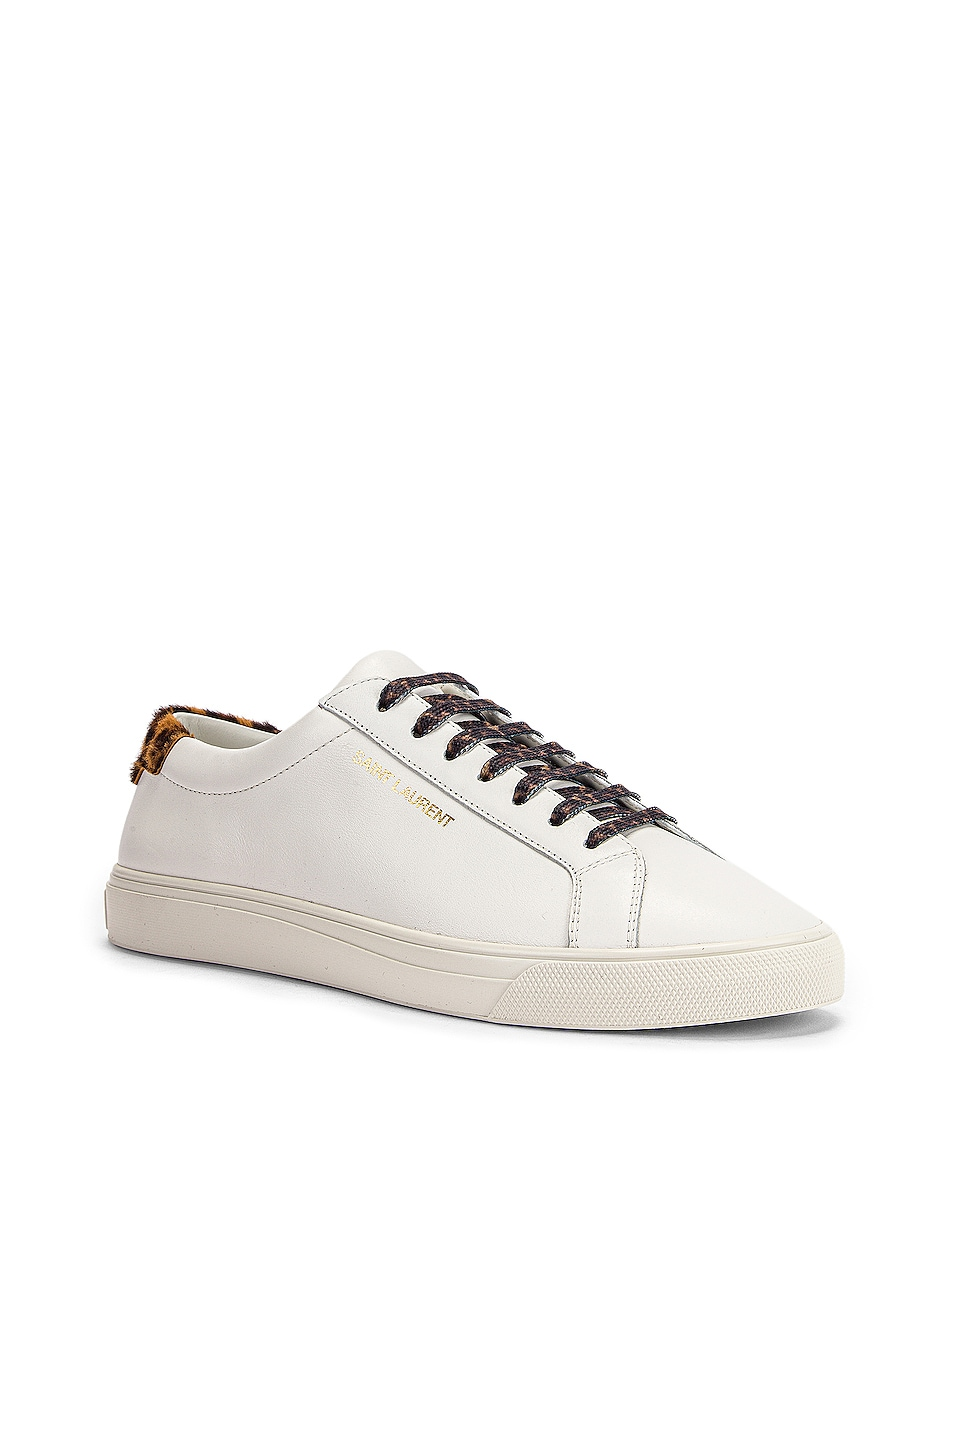 Image 2 of Saint Laurent Low Top Andy Sneakers in White & Natural